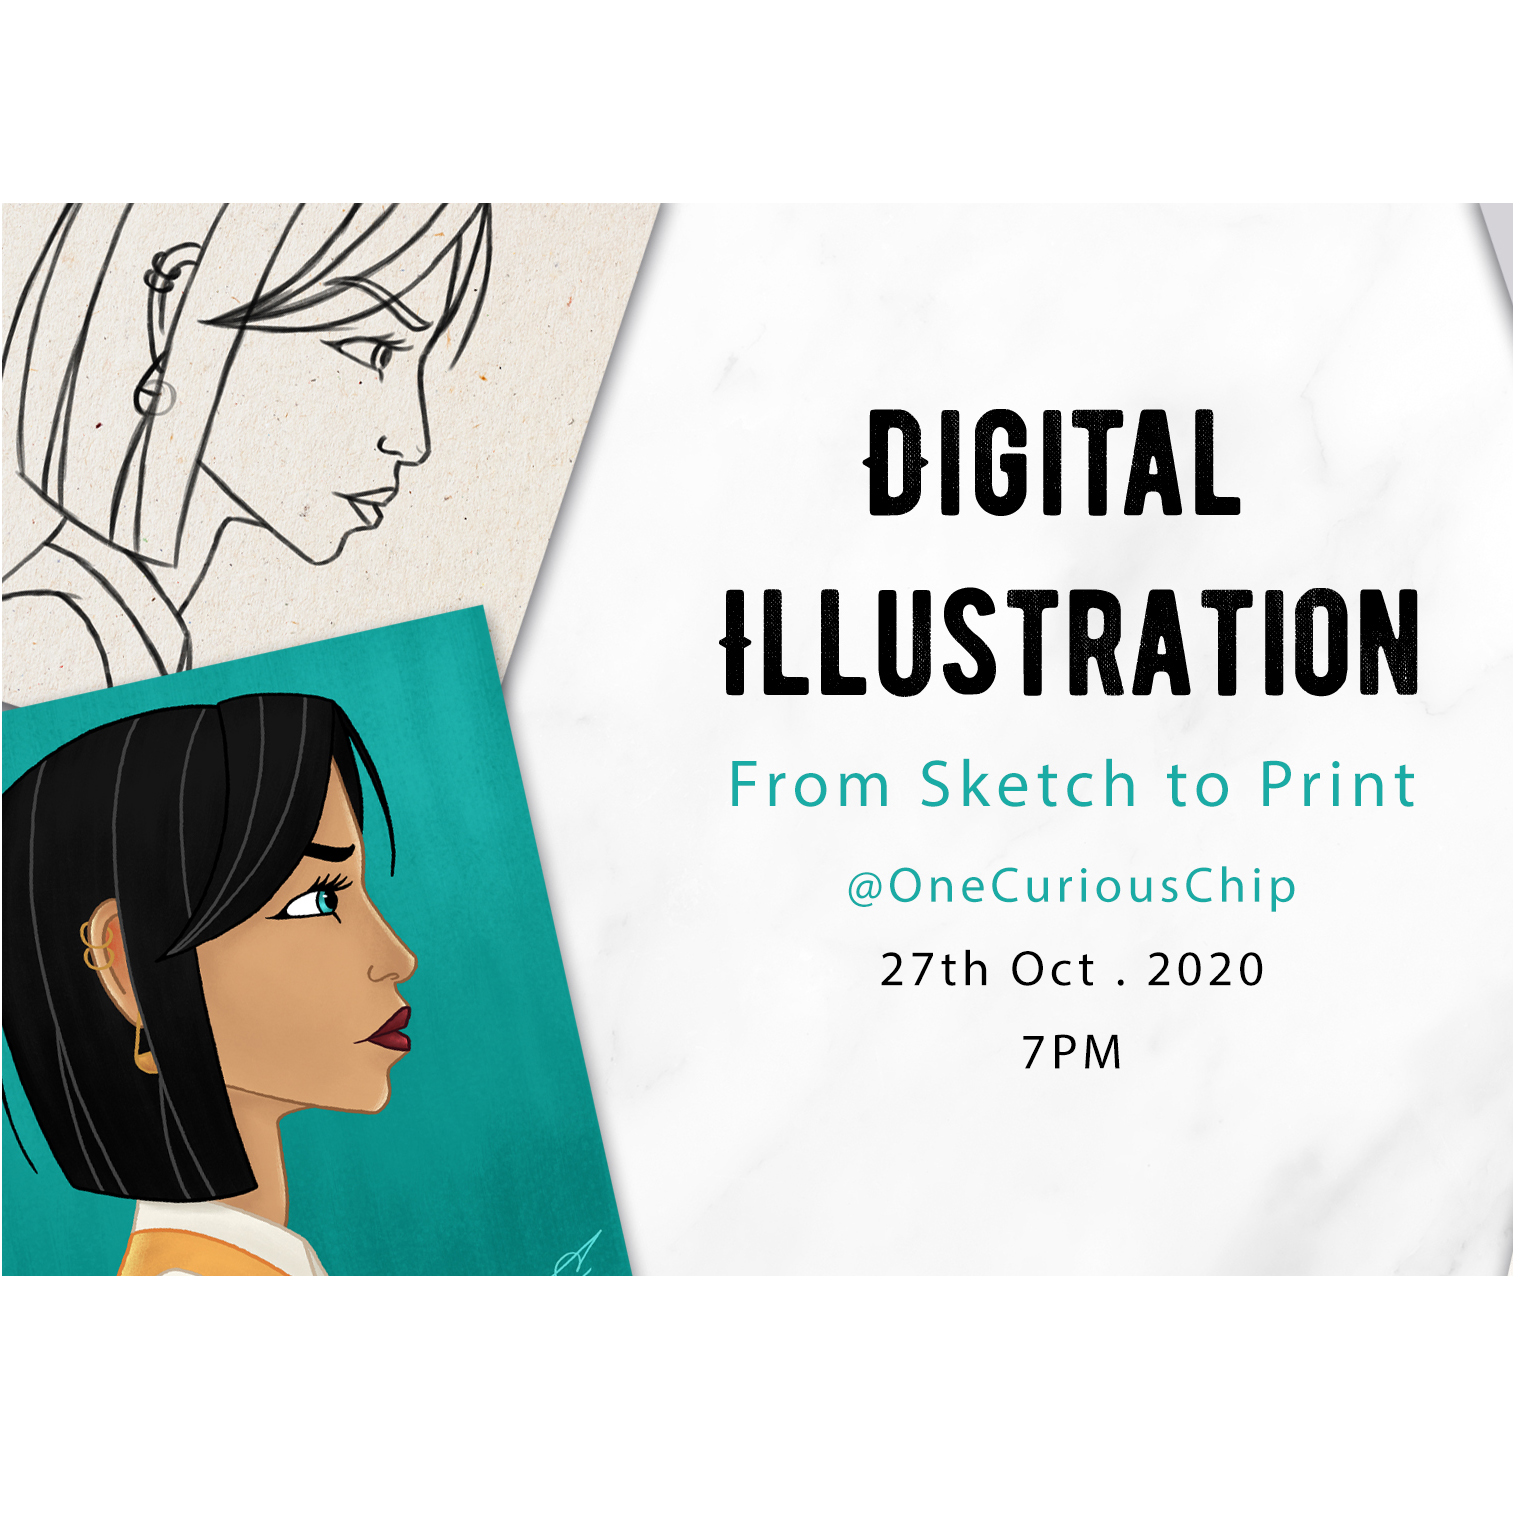 Digital Illustration: From Sketch to Print